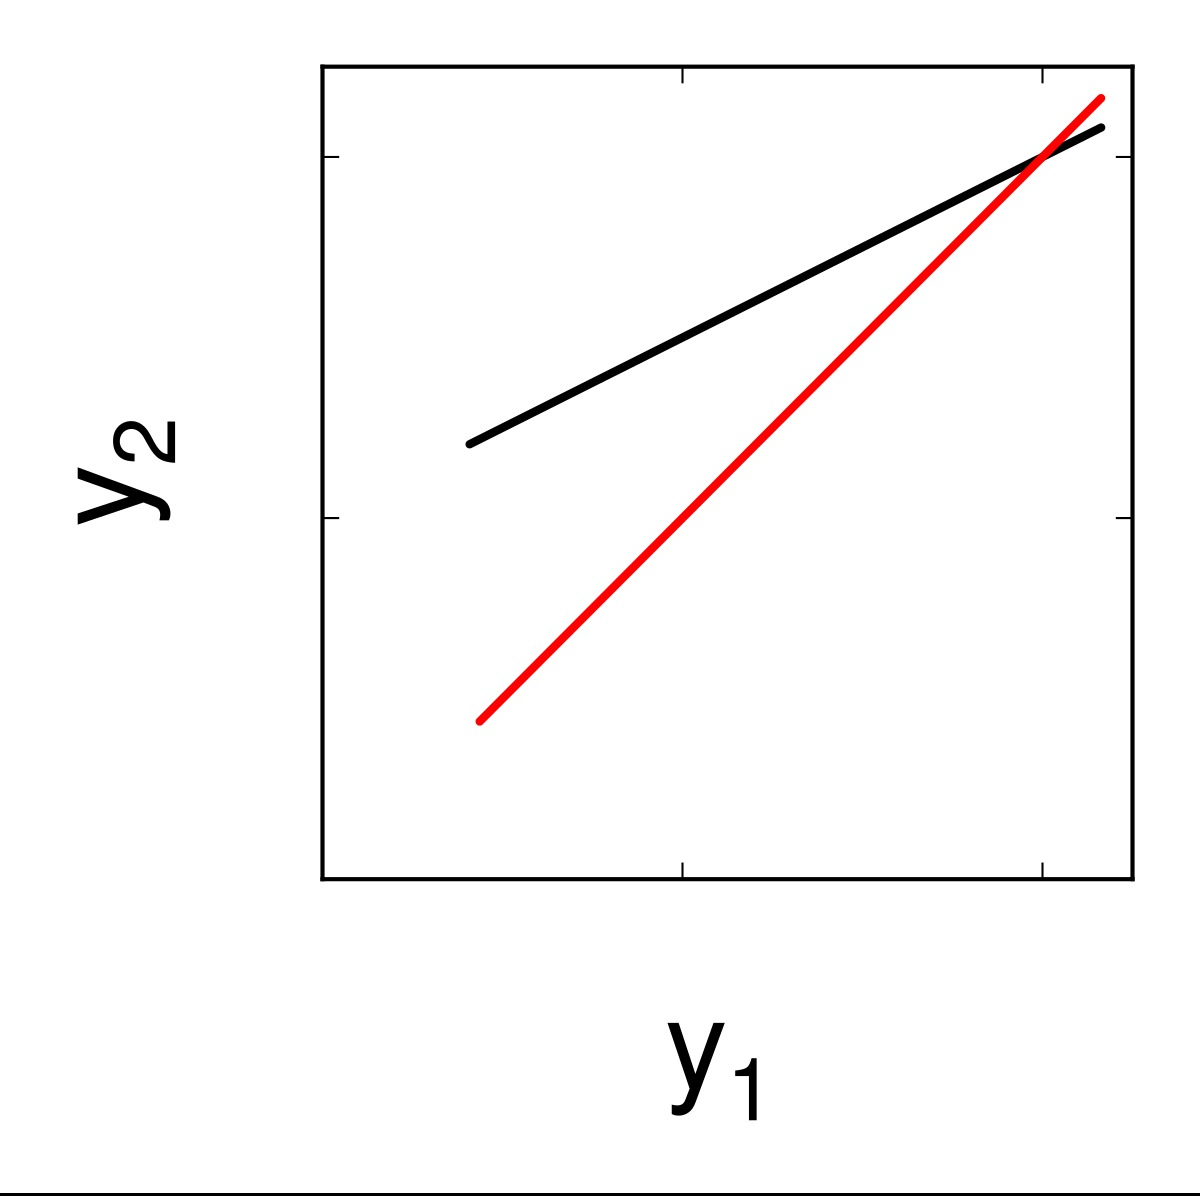 Figure 1: Two coupled neurons (schematic diagram at left panel). Synchronization manifold (black line for CS and red line for GS) is projected in the y1-y2 plane at right panel. Parameters are chosen in the chaotic dynamical regions for both the systems: a = 3, I = 3.25, d = 5, µ = 0.006, r = 4, c = 1.6, b1 = 0.5, b2 = 1. ɛ1 = 0.45 and ɛ2 = 1.